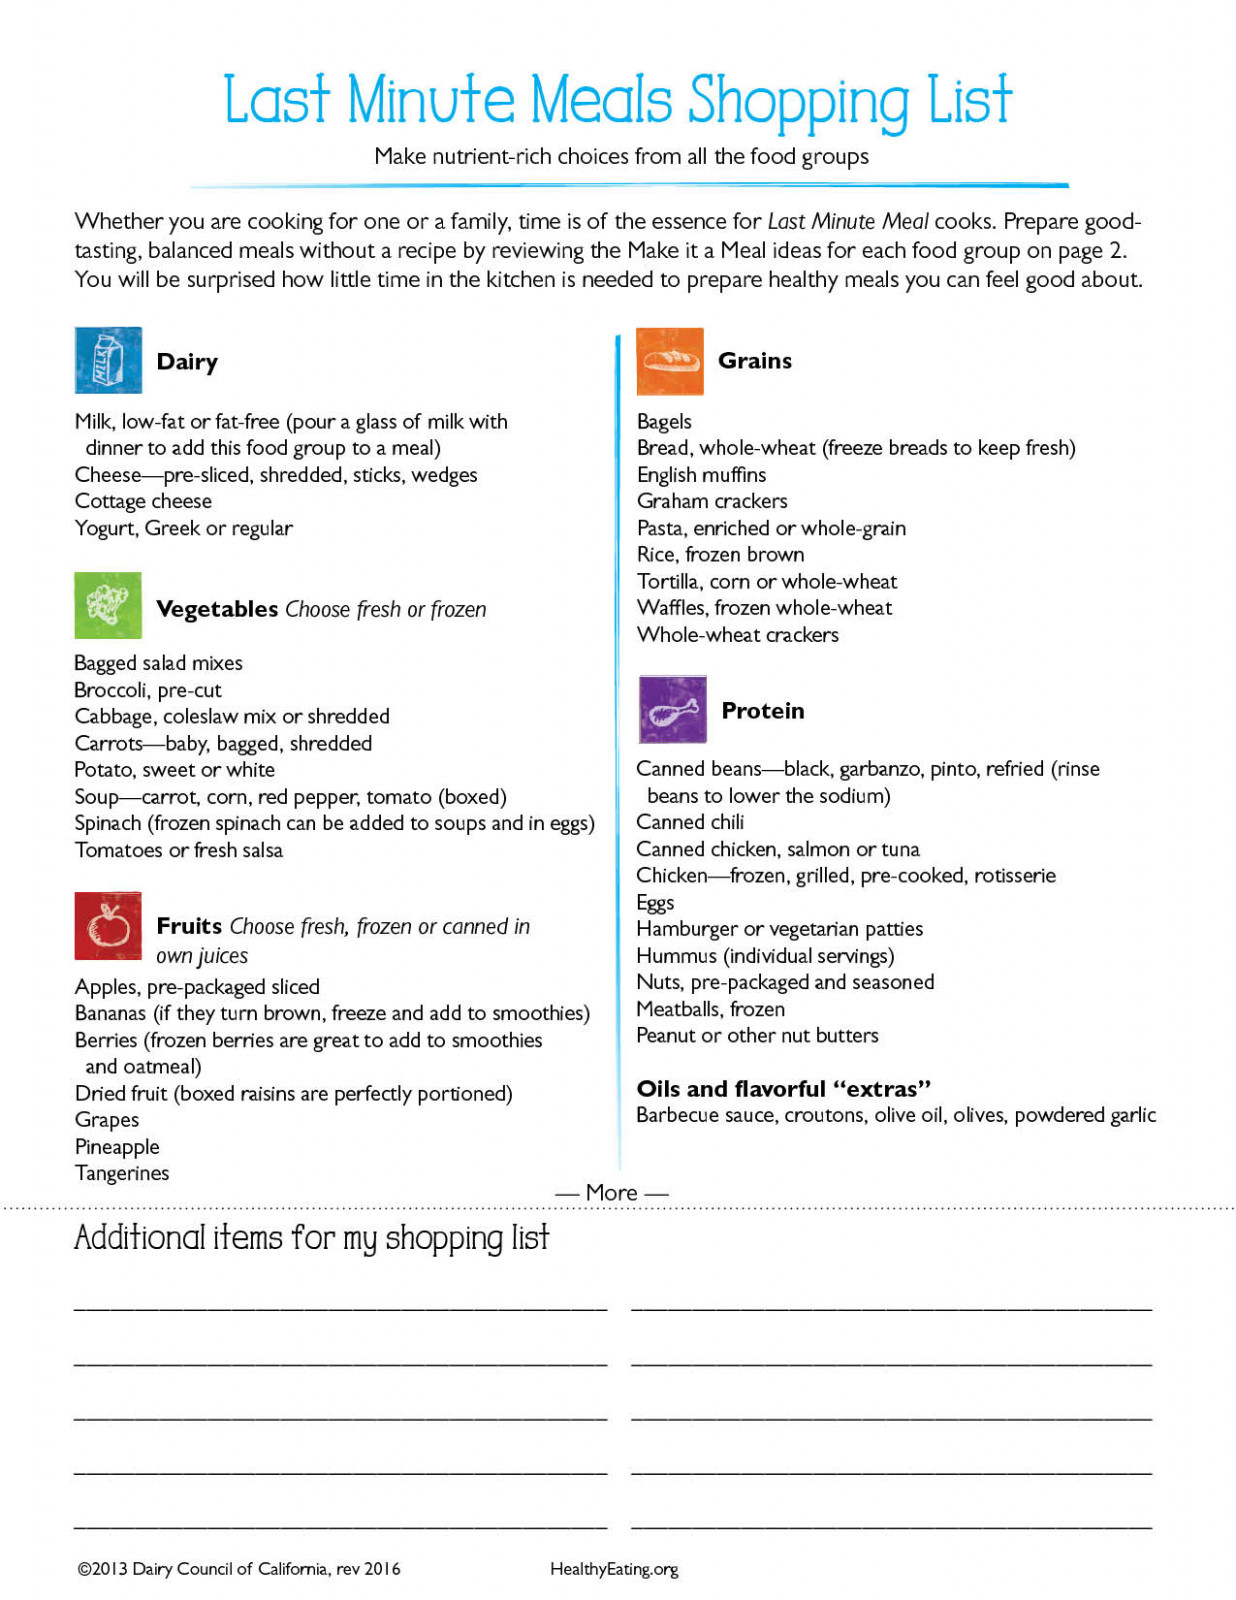 Shopping list for last minute meals - healthy recipes list